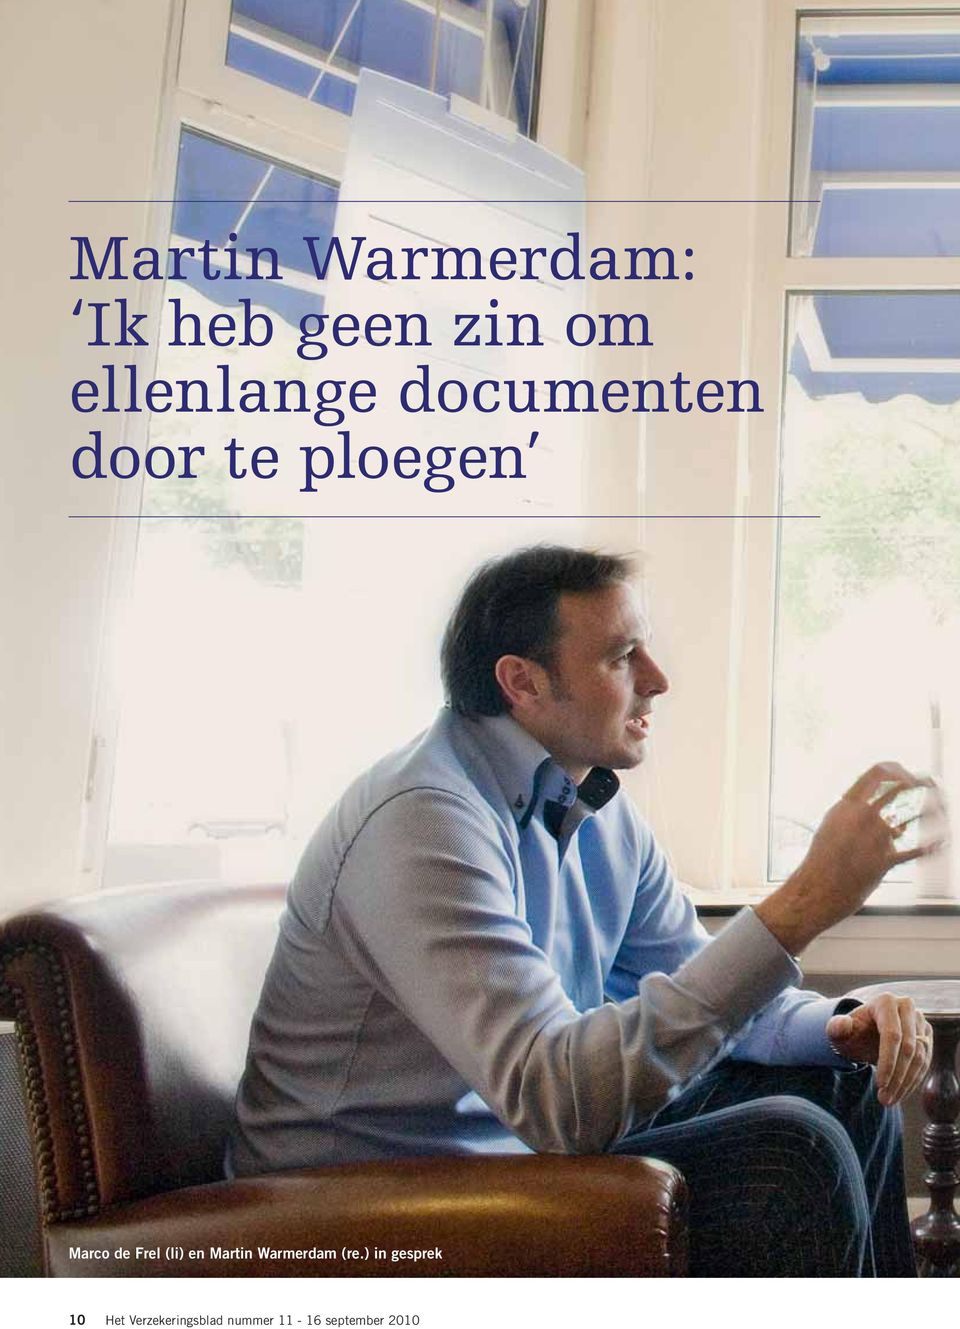 de Frel (li) en Martin Warmerdam (re.